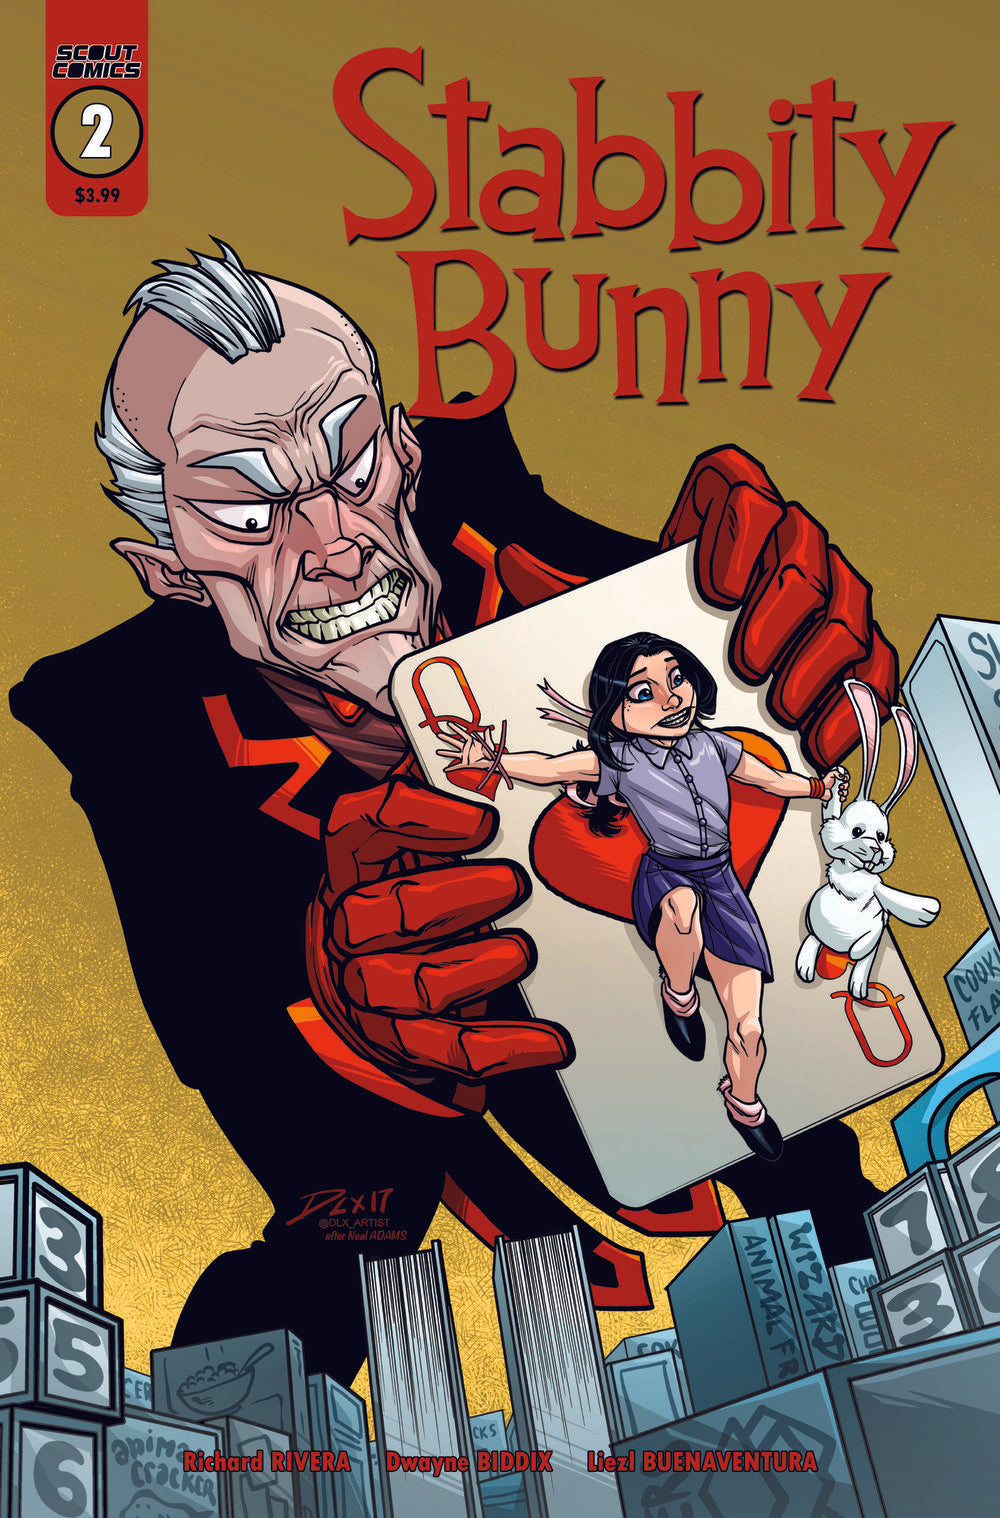 Stabbity Bunny #2 - 2nd Print